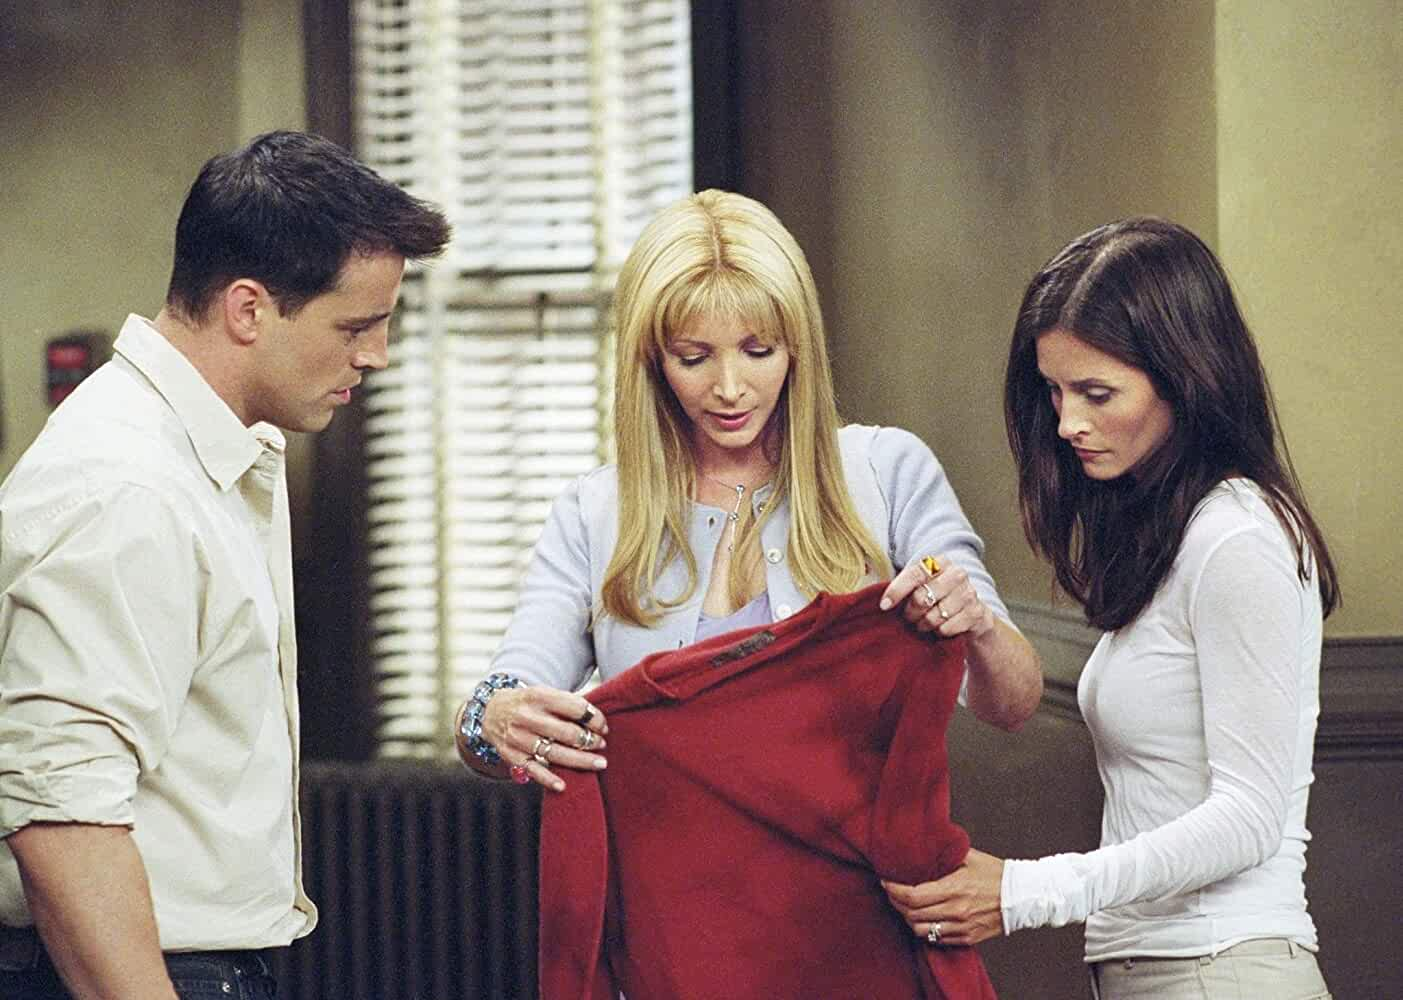 Courteney Cox, Lisa Kudrow, and Matt LeBlanc in Friends (1994)